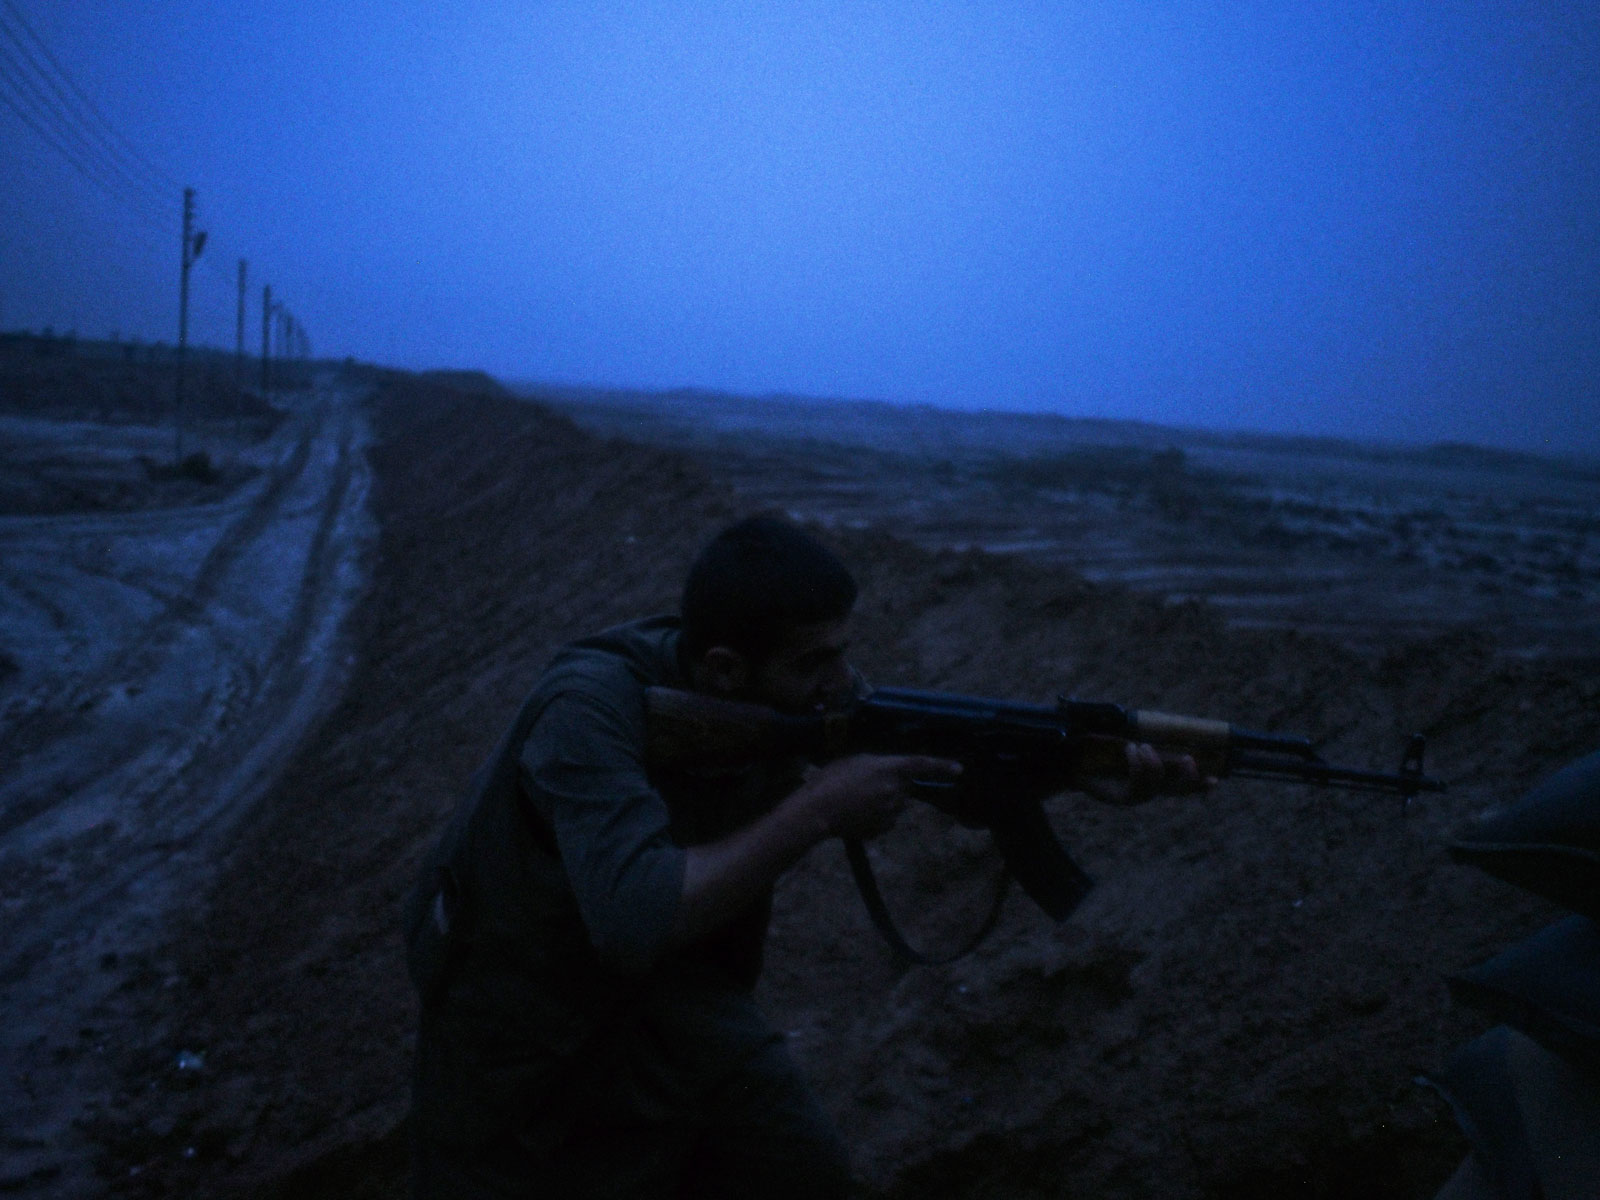 A Kurdish PKK fighter aiming his rifle at an Islamic State position, Dokuk, Iraq, December 3, 2014